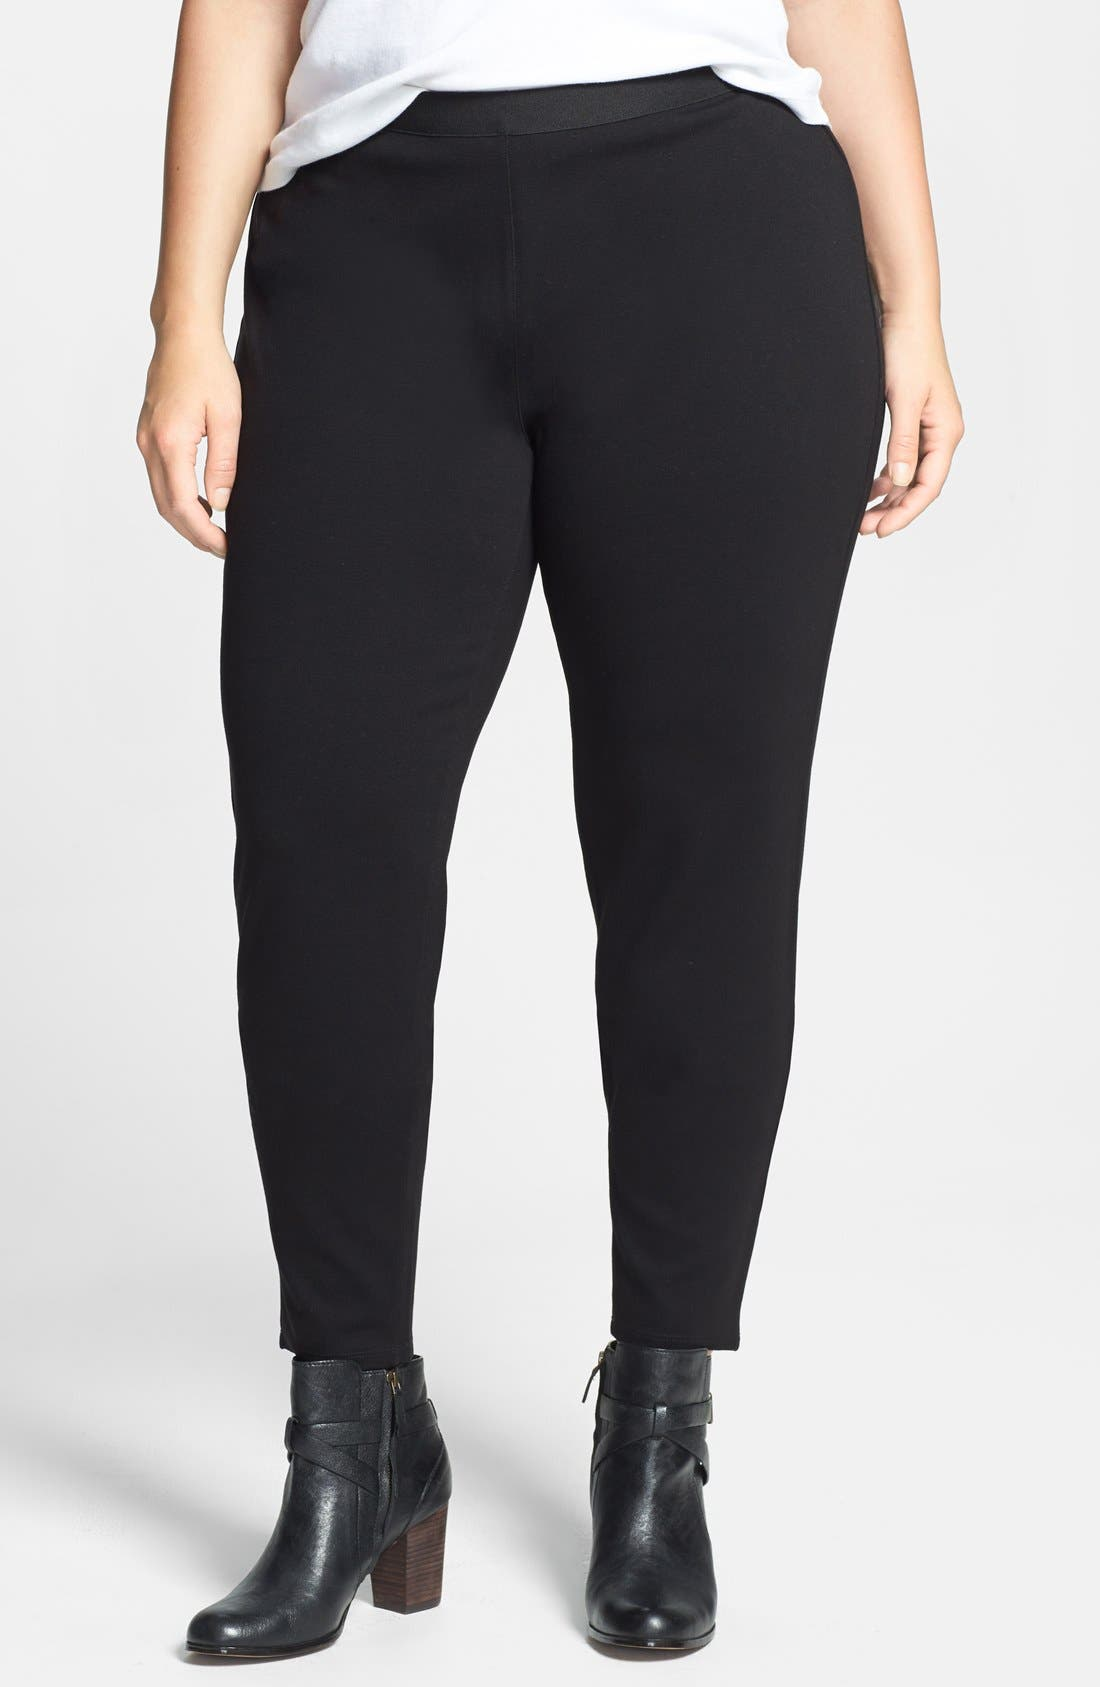 Alternate Image 1 Selected - Eileen Fisher Leggings (Plus Size) (Online Only)